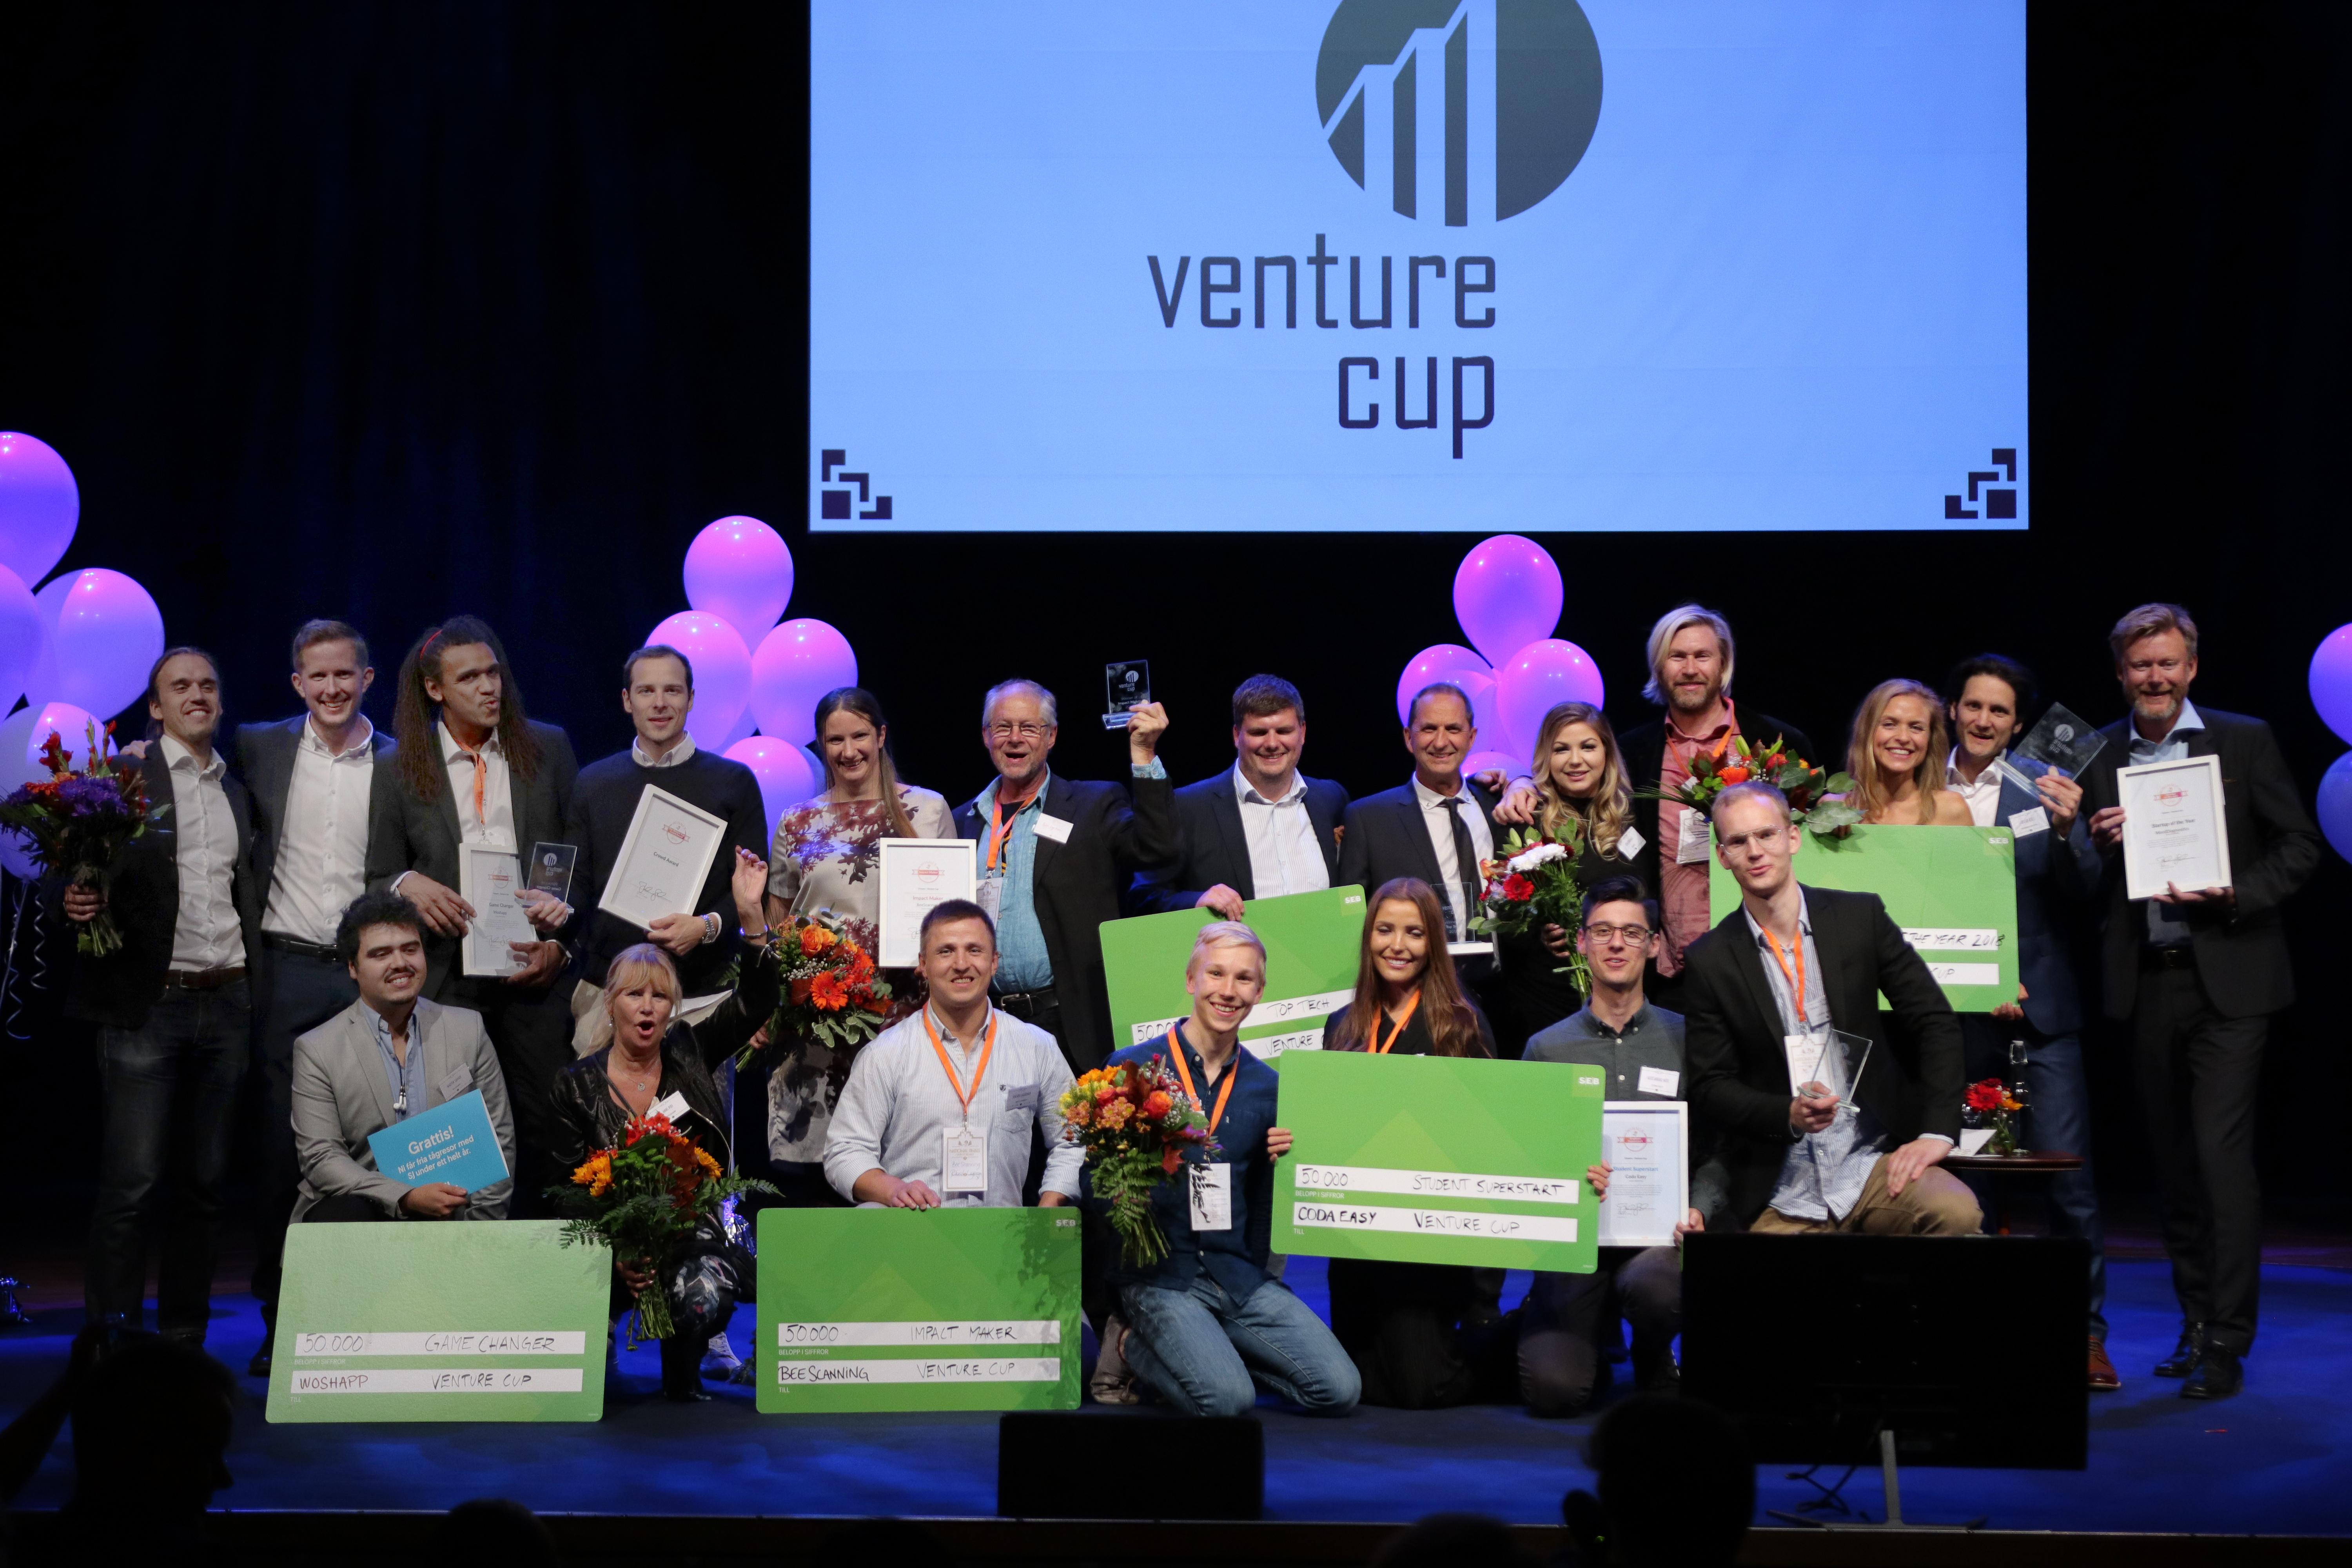 Congratulations! Winners of Venture Cup STARTUP 2018